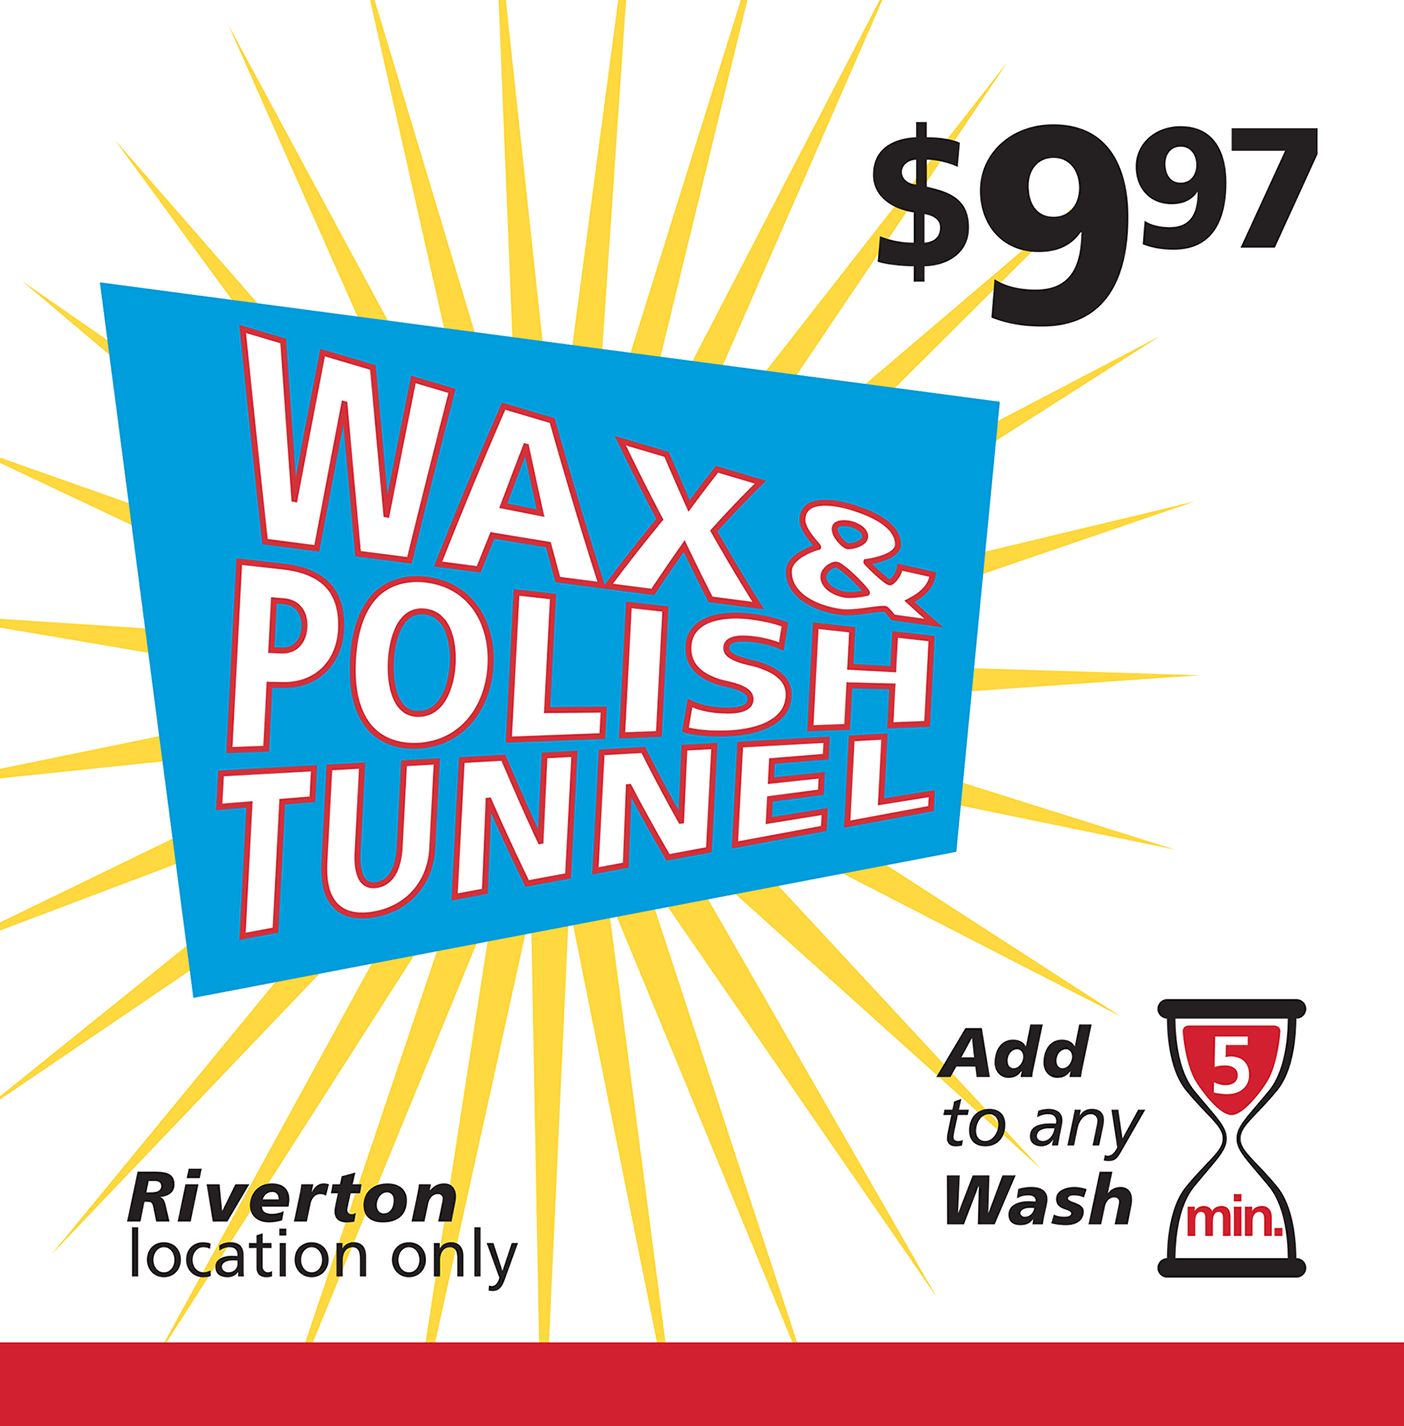 Wax and Polish Tunnel $9.97 add to any wash, Riverton location only